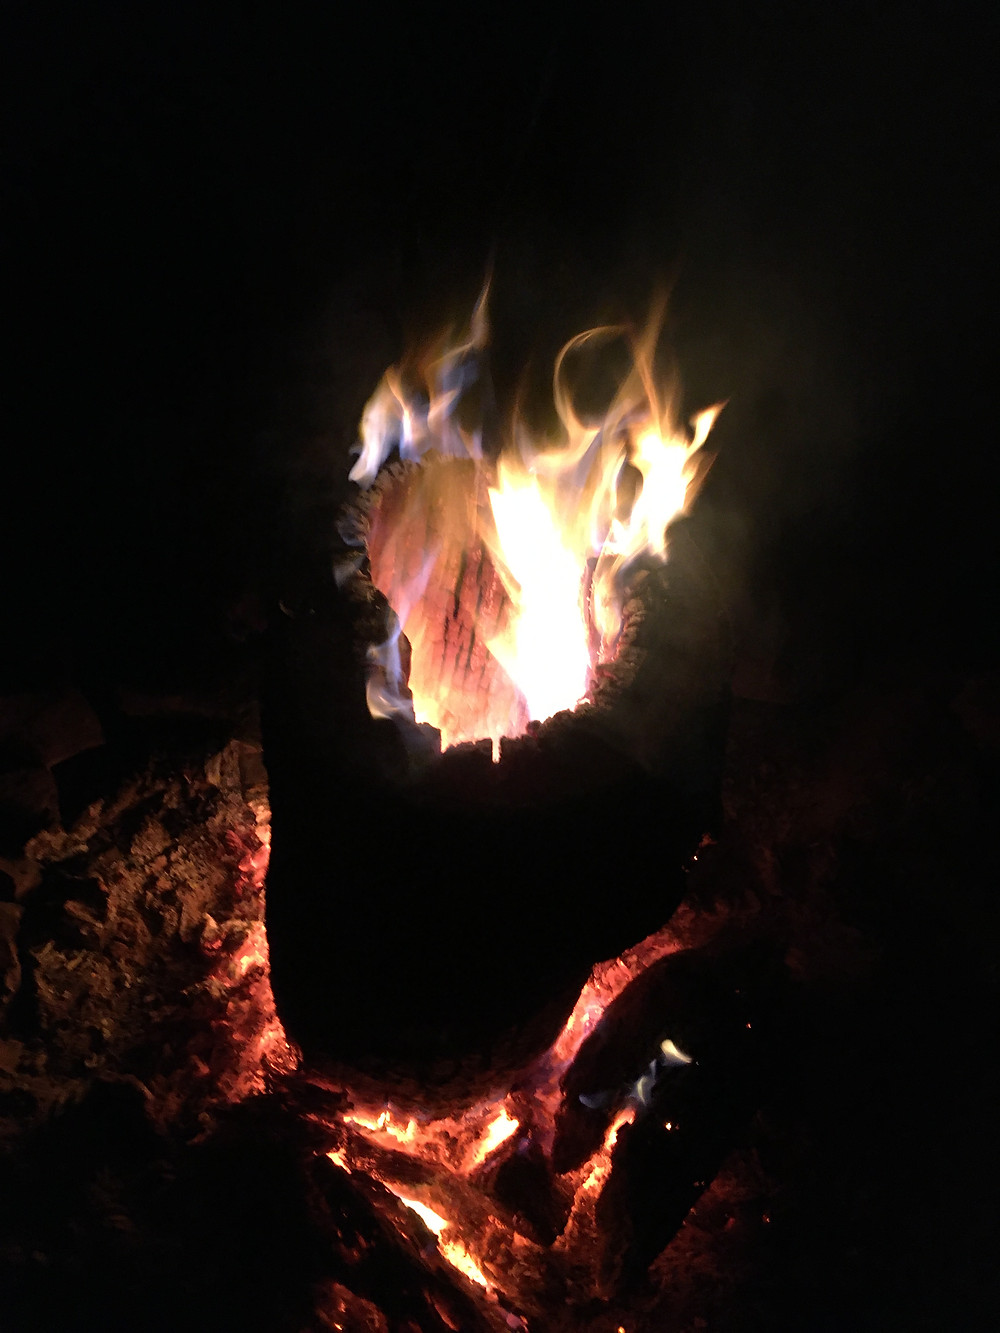 A hollowed out log in the middle of a campfire shoots flames out of the top, creating an inferno of amazing - somewhere in the White Mountains National Forest in Northern New Hampshire